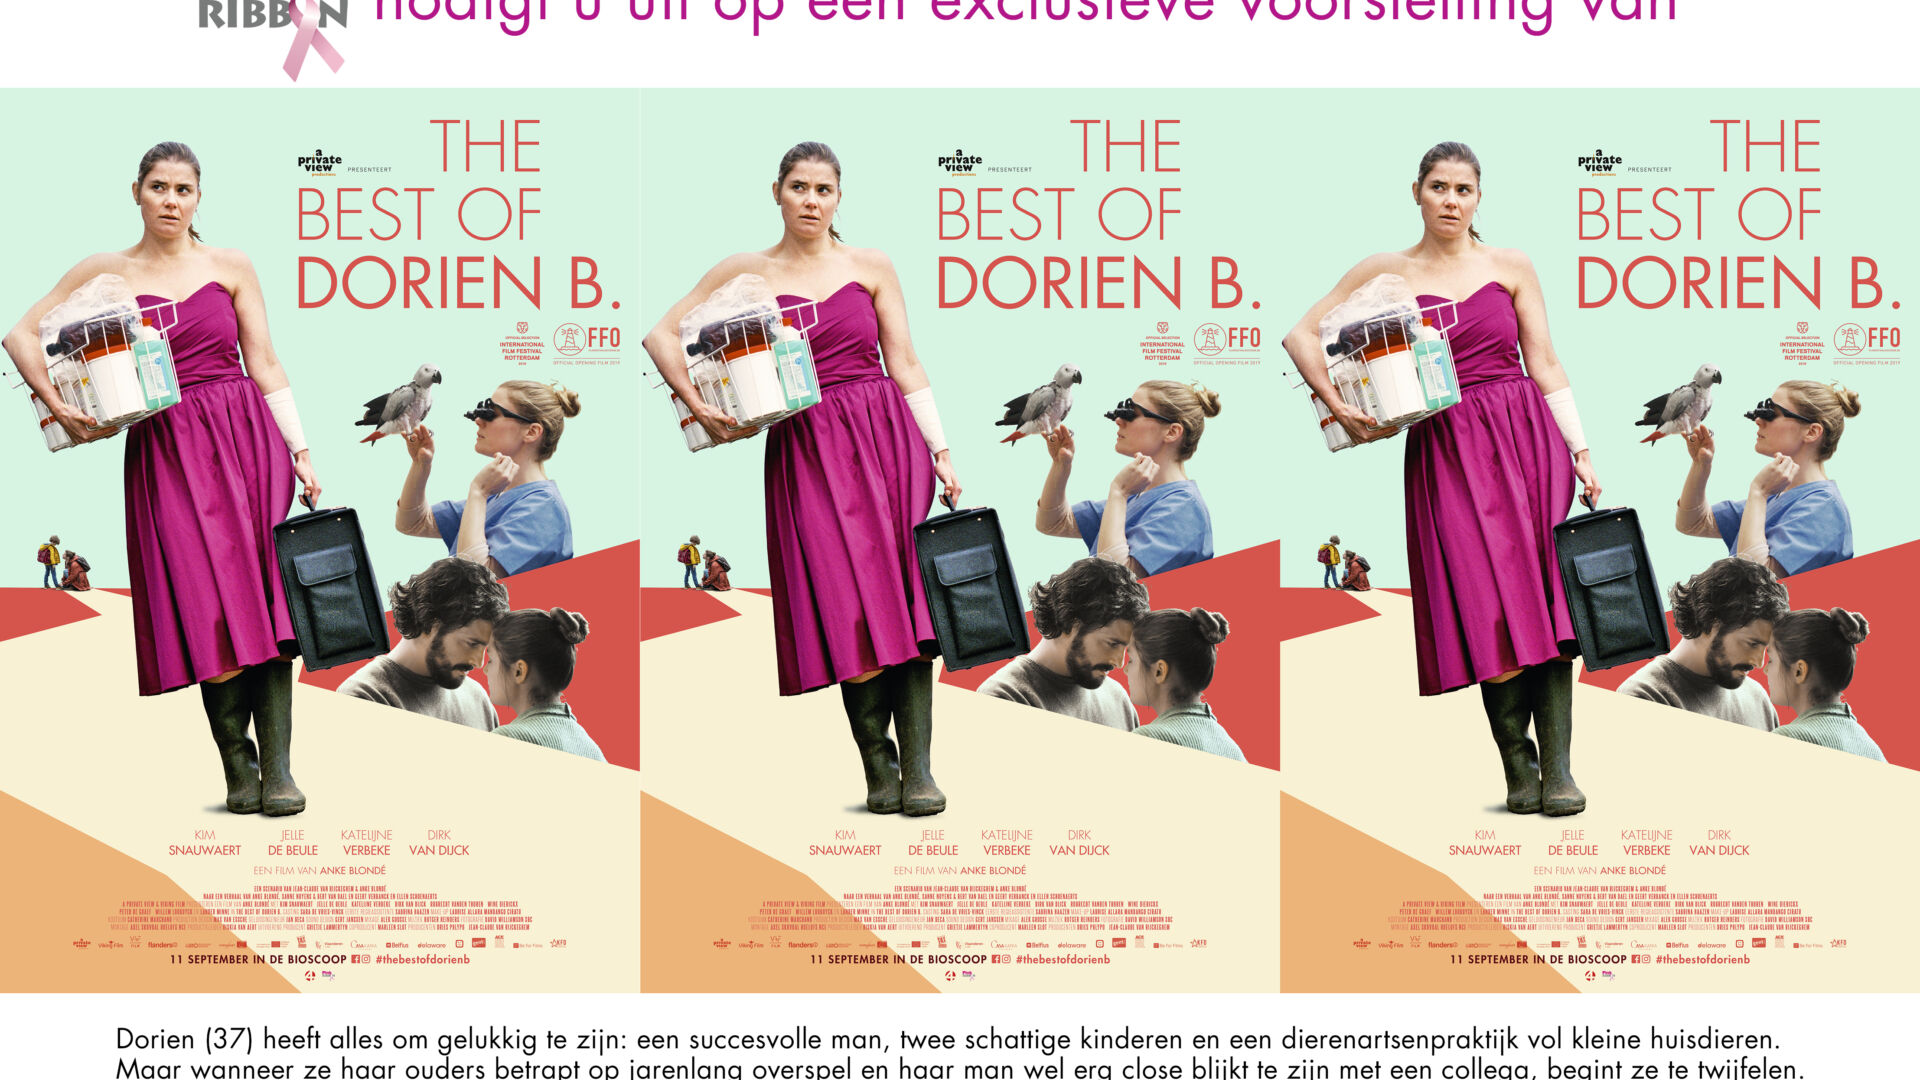 20190806 Pink Ribbon Uitnodiging The Best Of Dorien B